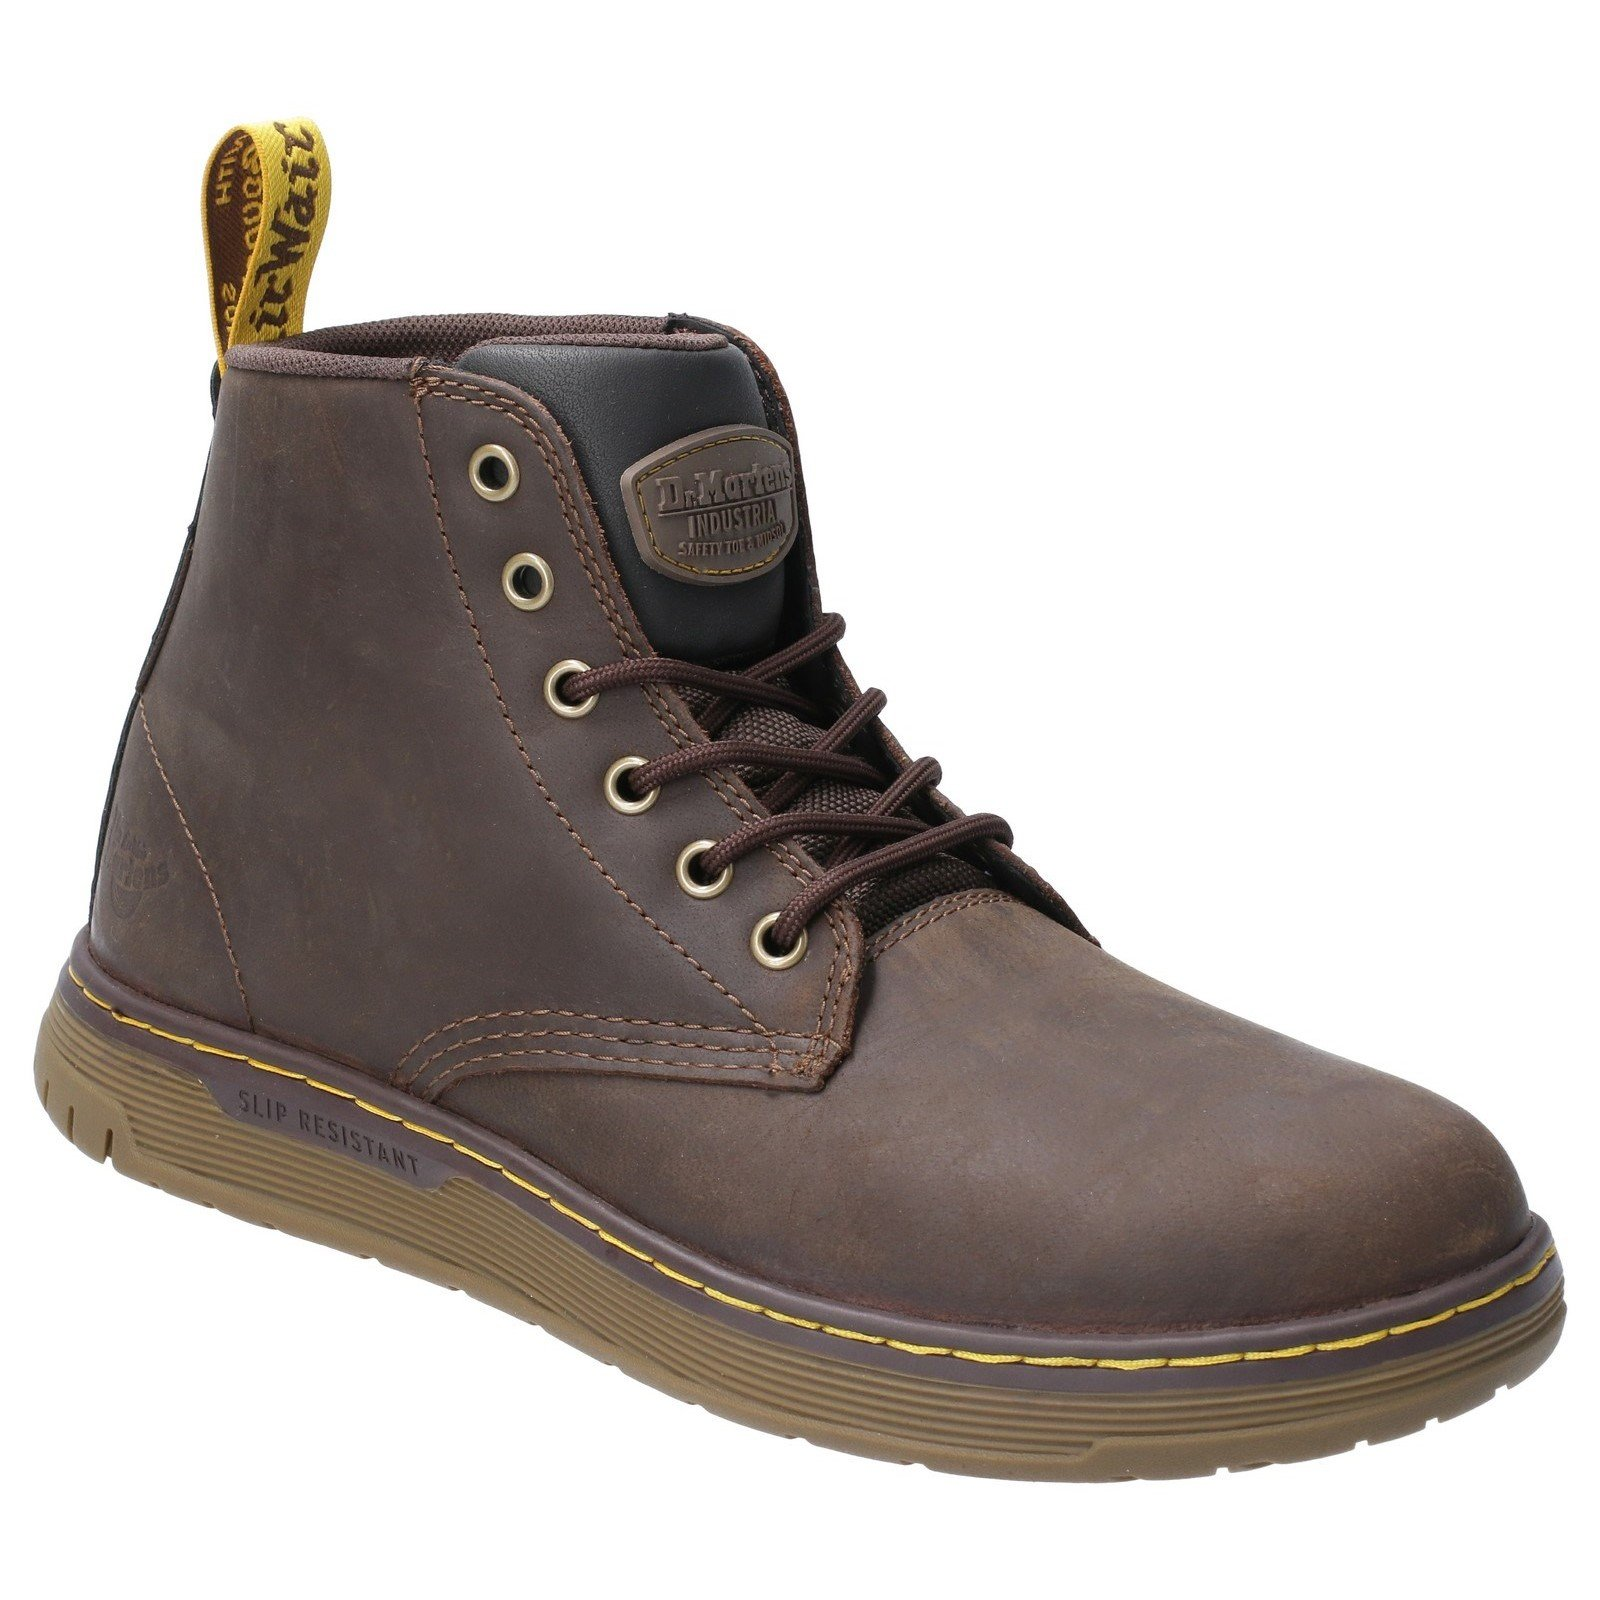 Dr Martens Unisex Ledger Lace Up Safety Boot Brown 29501 - Brown 8